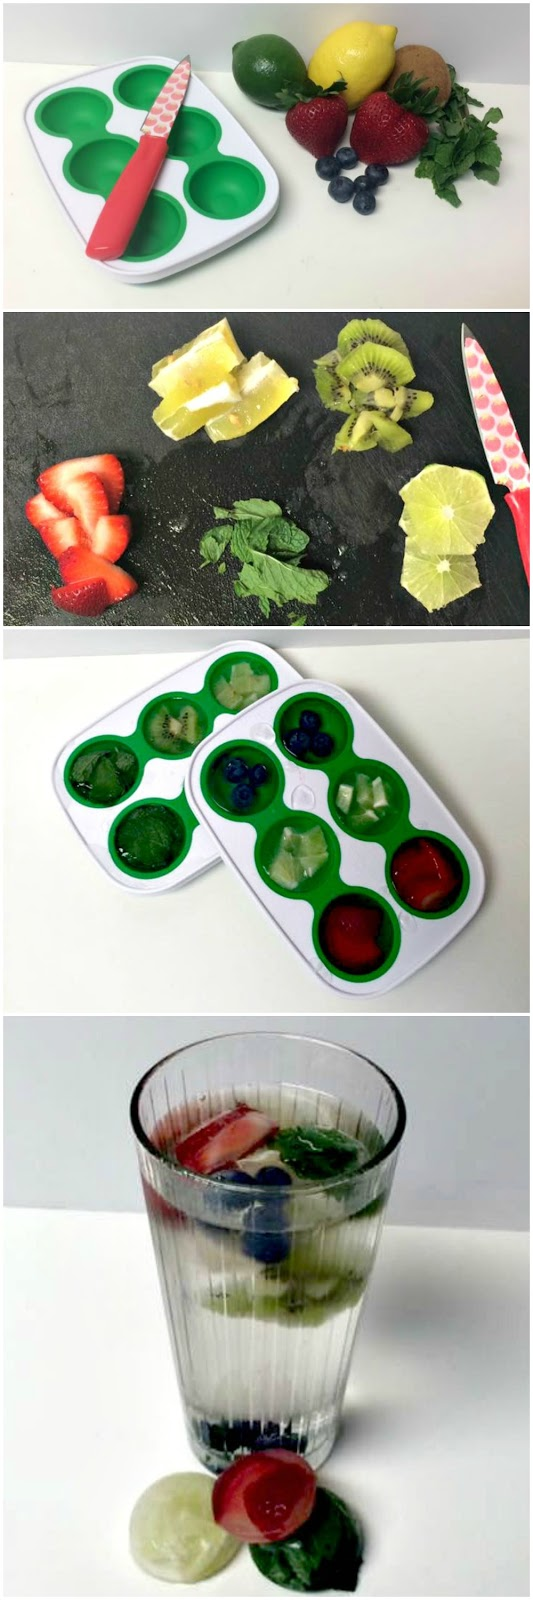 Flavor Infused Ice Cubes for a Refreshing Summer Drink